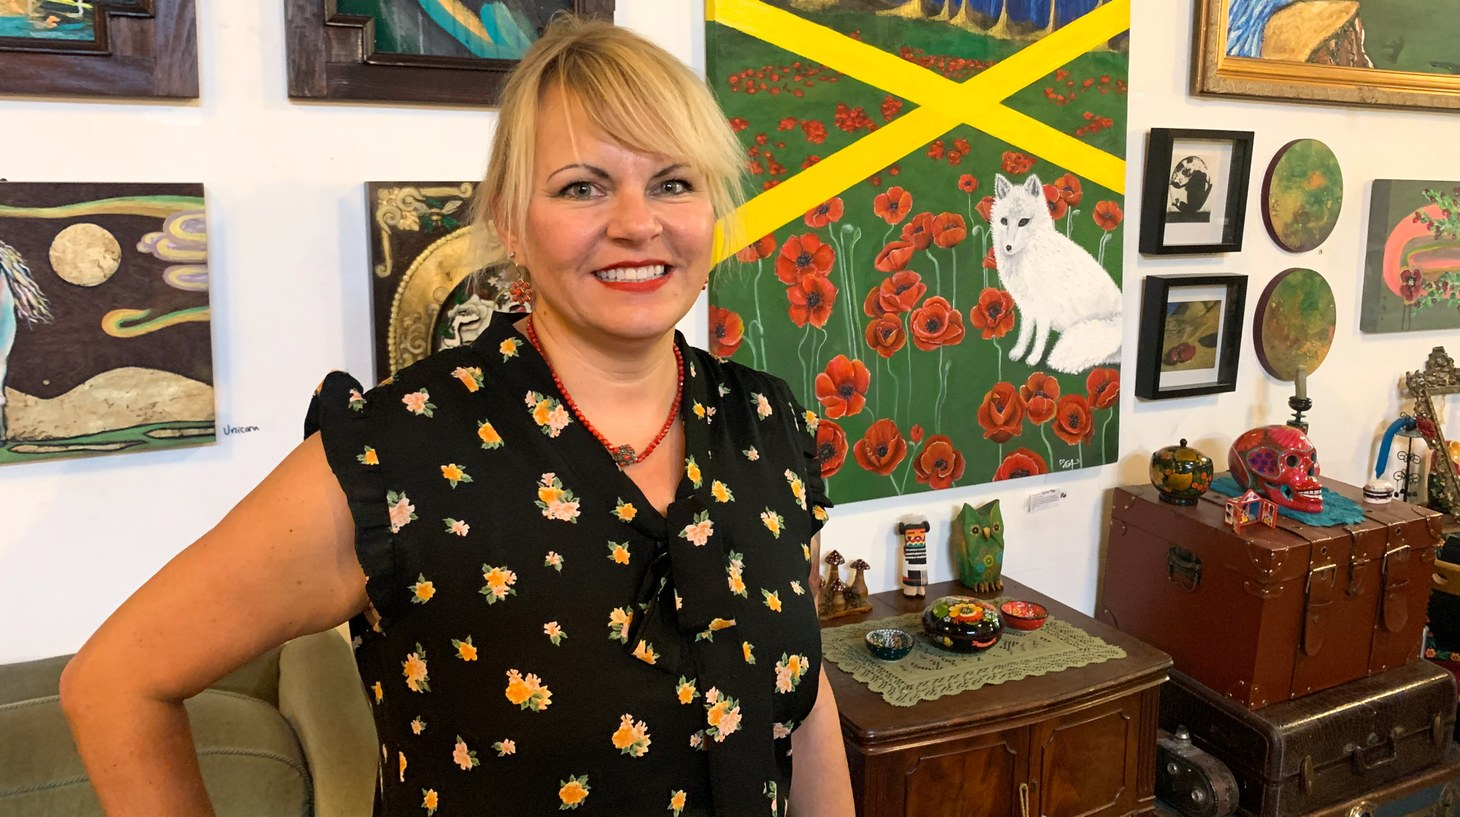 Eva Pietraszak at her art studio.